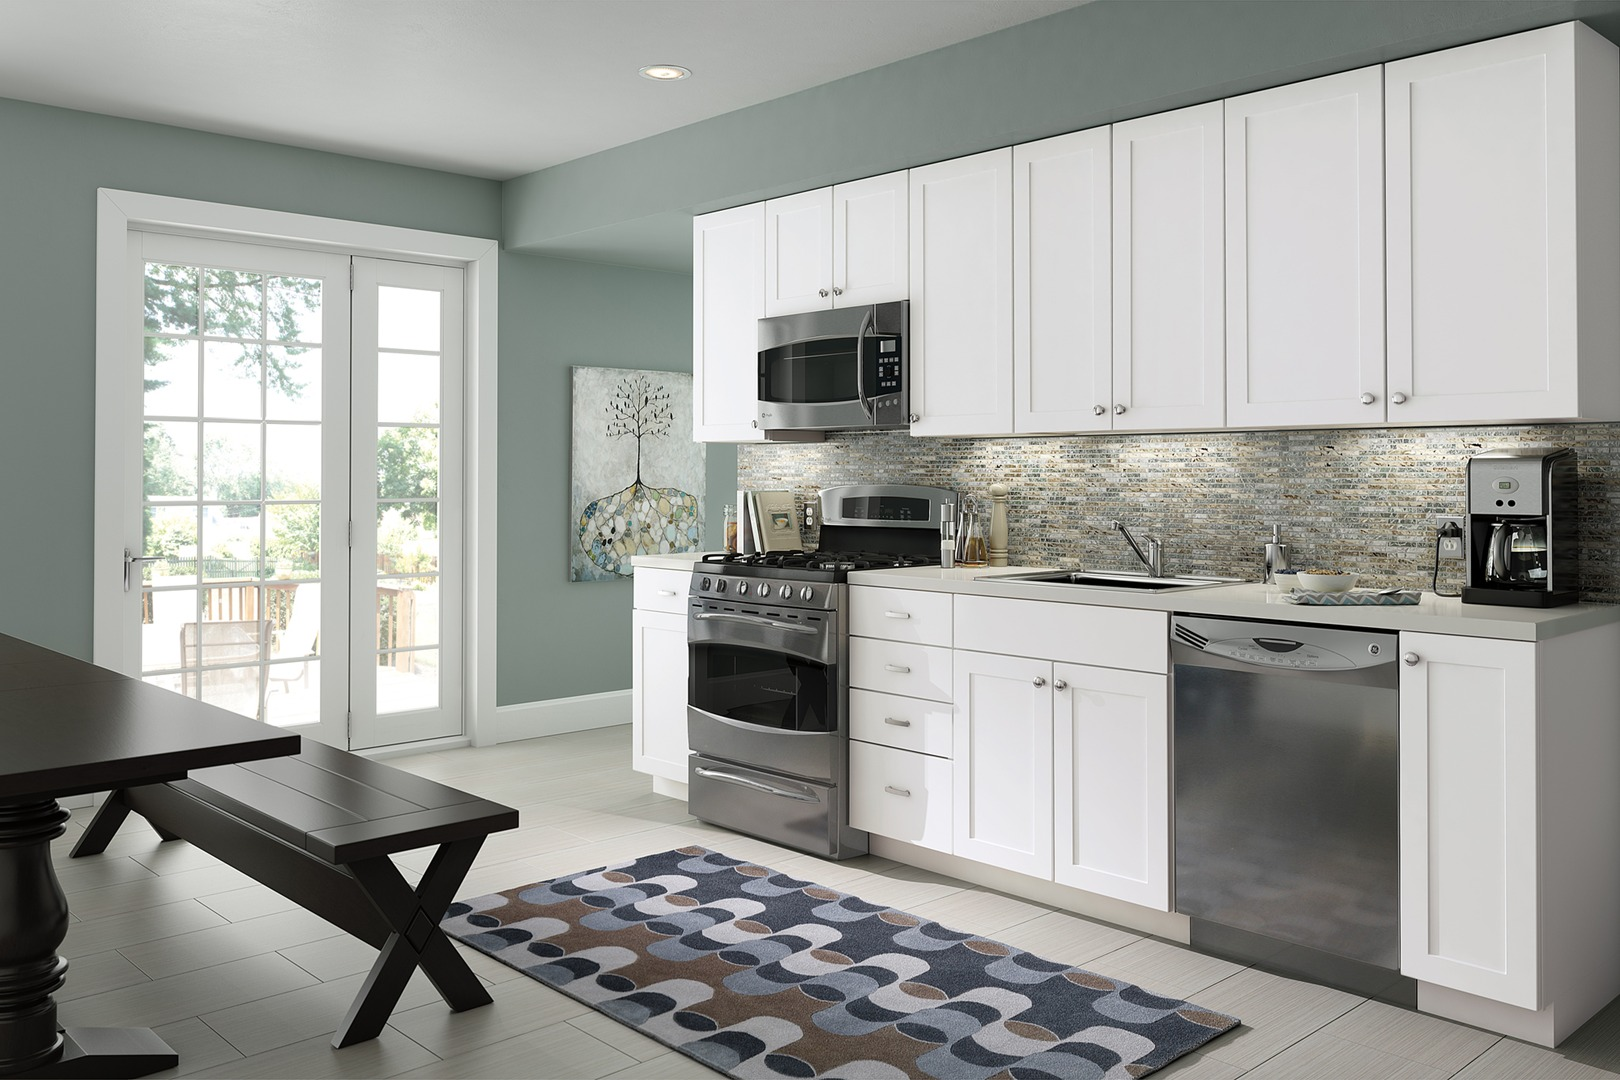 Sky Construction inc. - House Remodeling, Cabinetry, Bathroom Remodeling